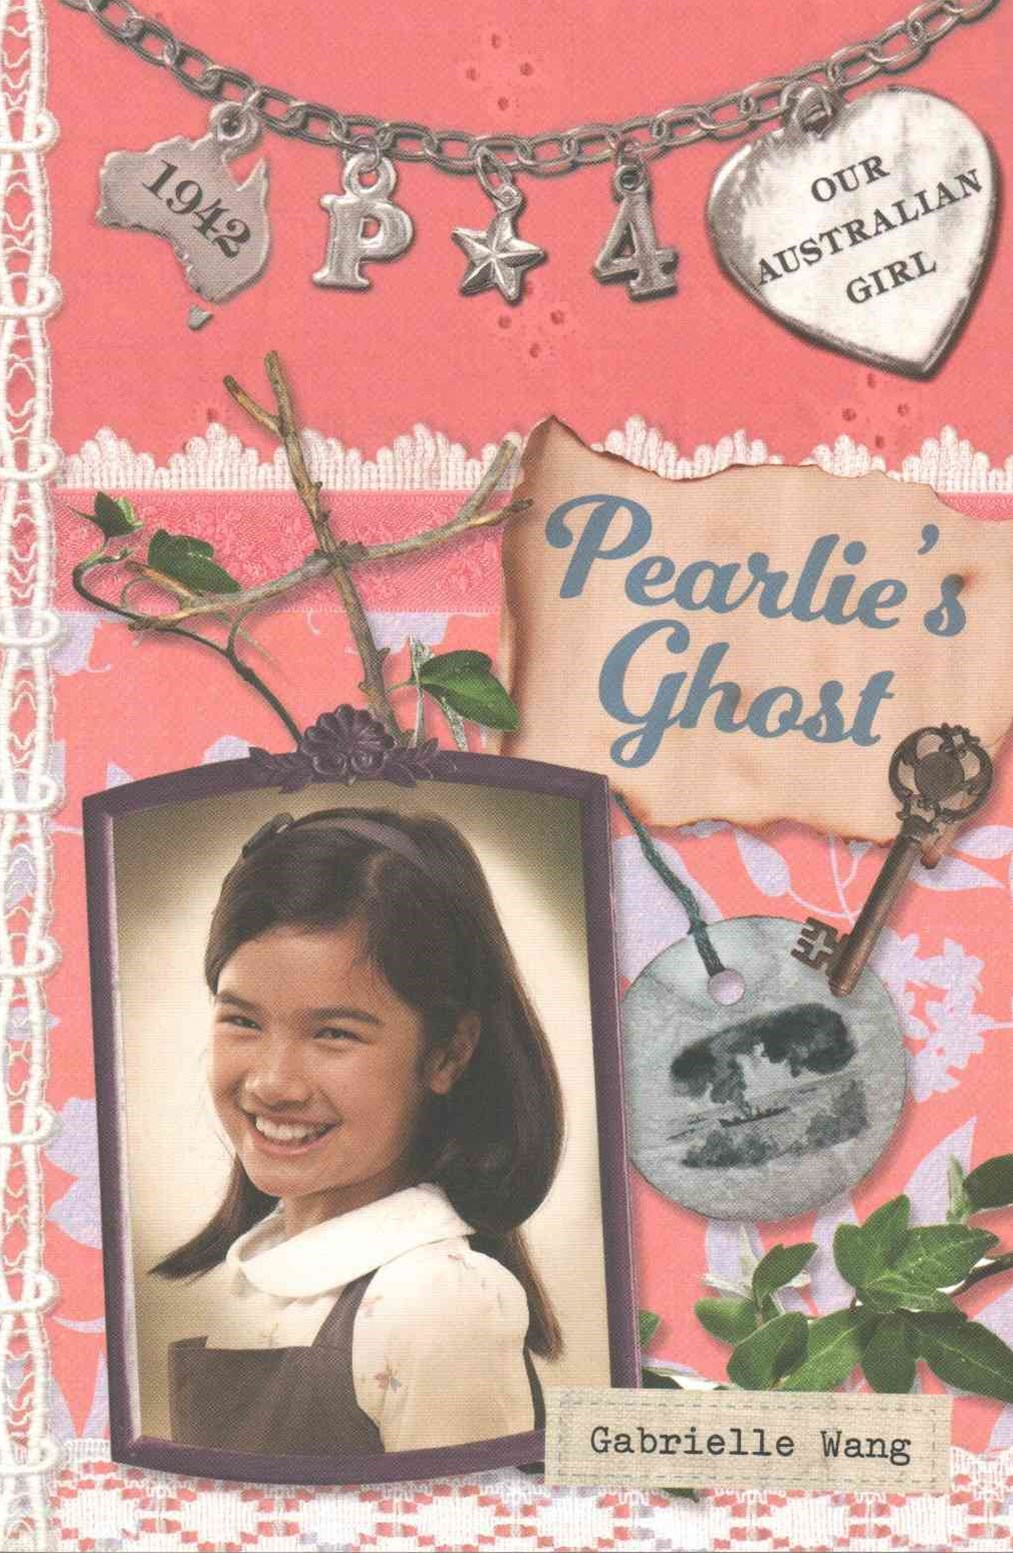 Our Australian Girl: Pearlie's Ghost (Book 4)